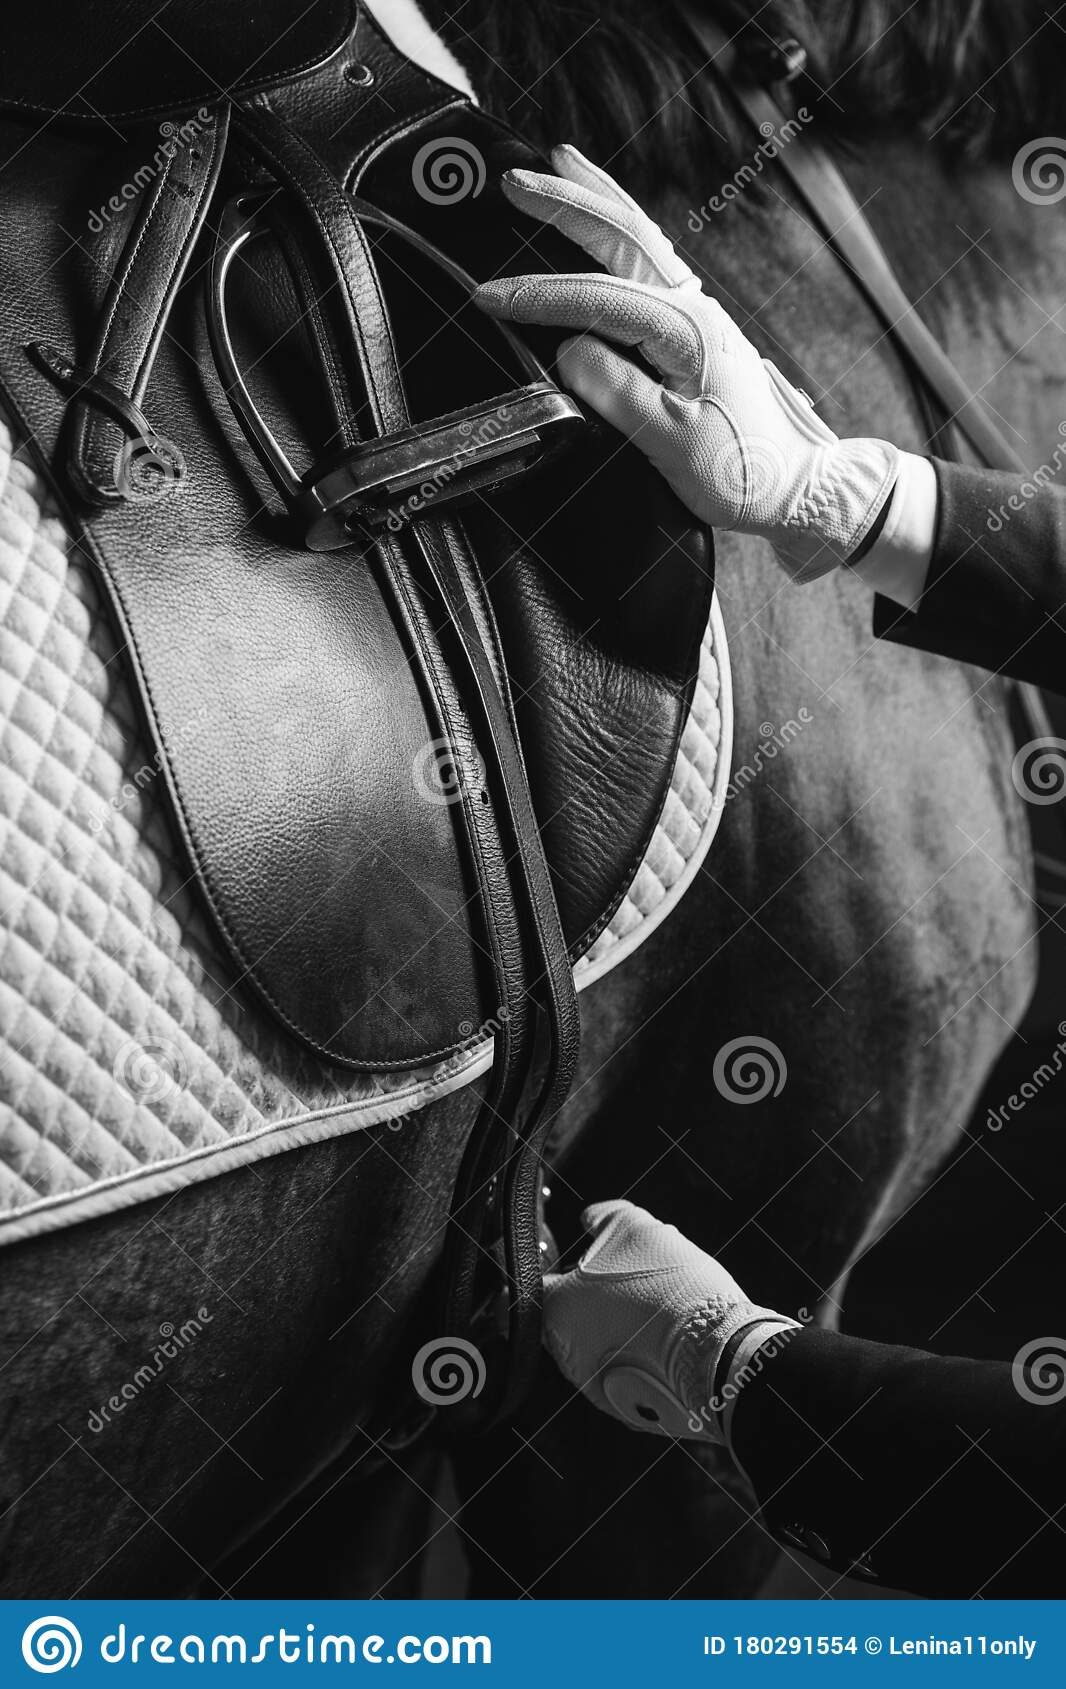 Horse Rider Saddle Up The Thoroughbred Horse For Dressage Or Equestrian Race Stock Photo Image Of Parimutuel Rider 180291554